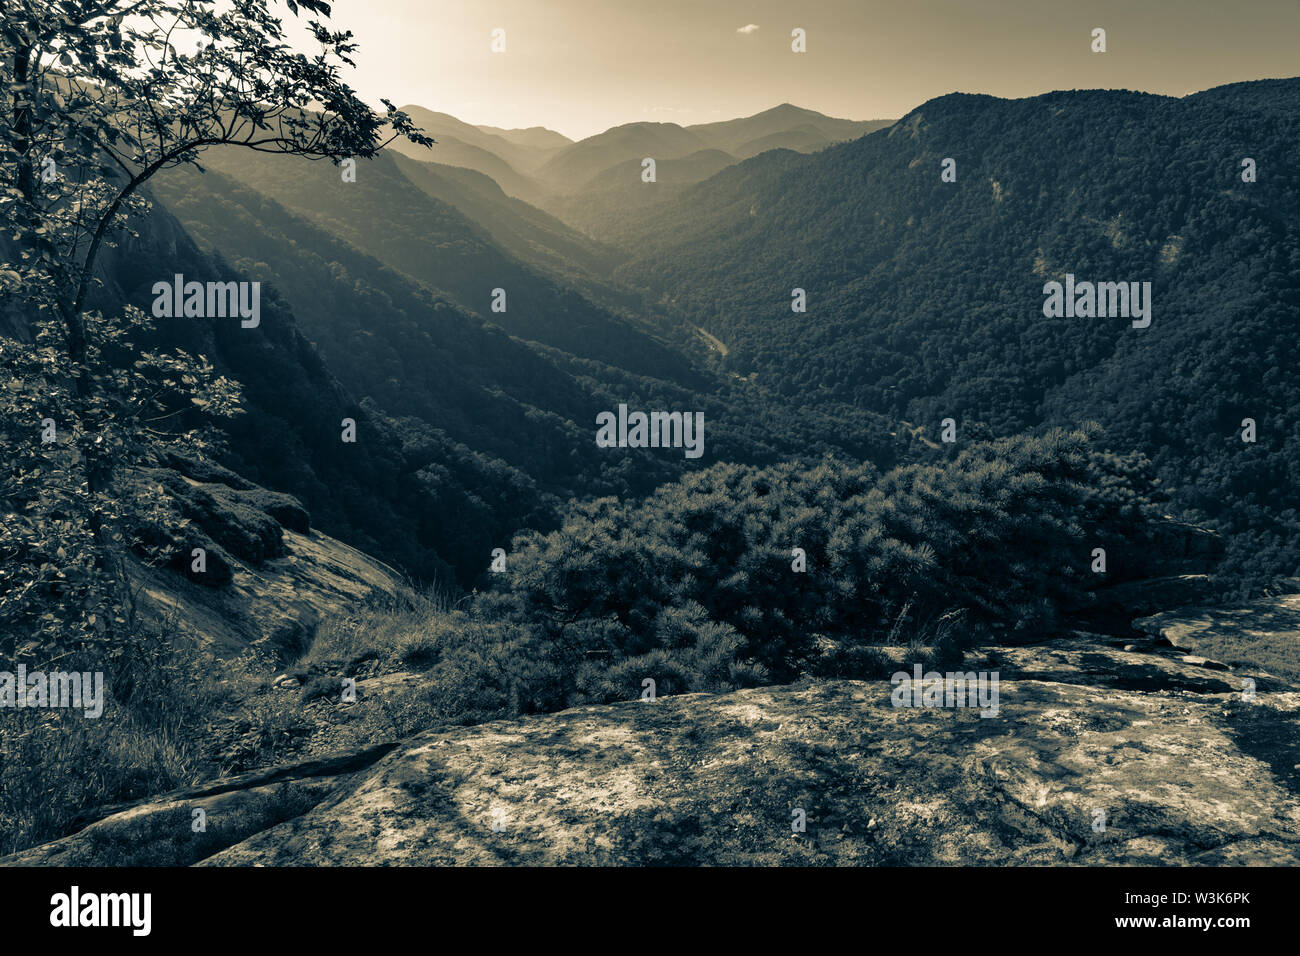 The view up Hickory Nut Gorge from Exclamation Point above Chimney Rock, North Carolina, USA. - Stock Image